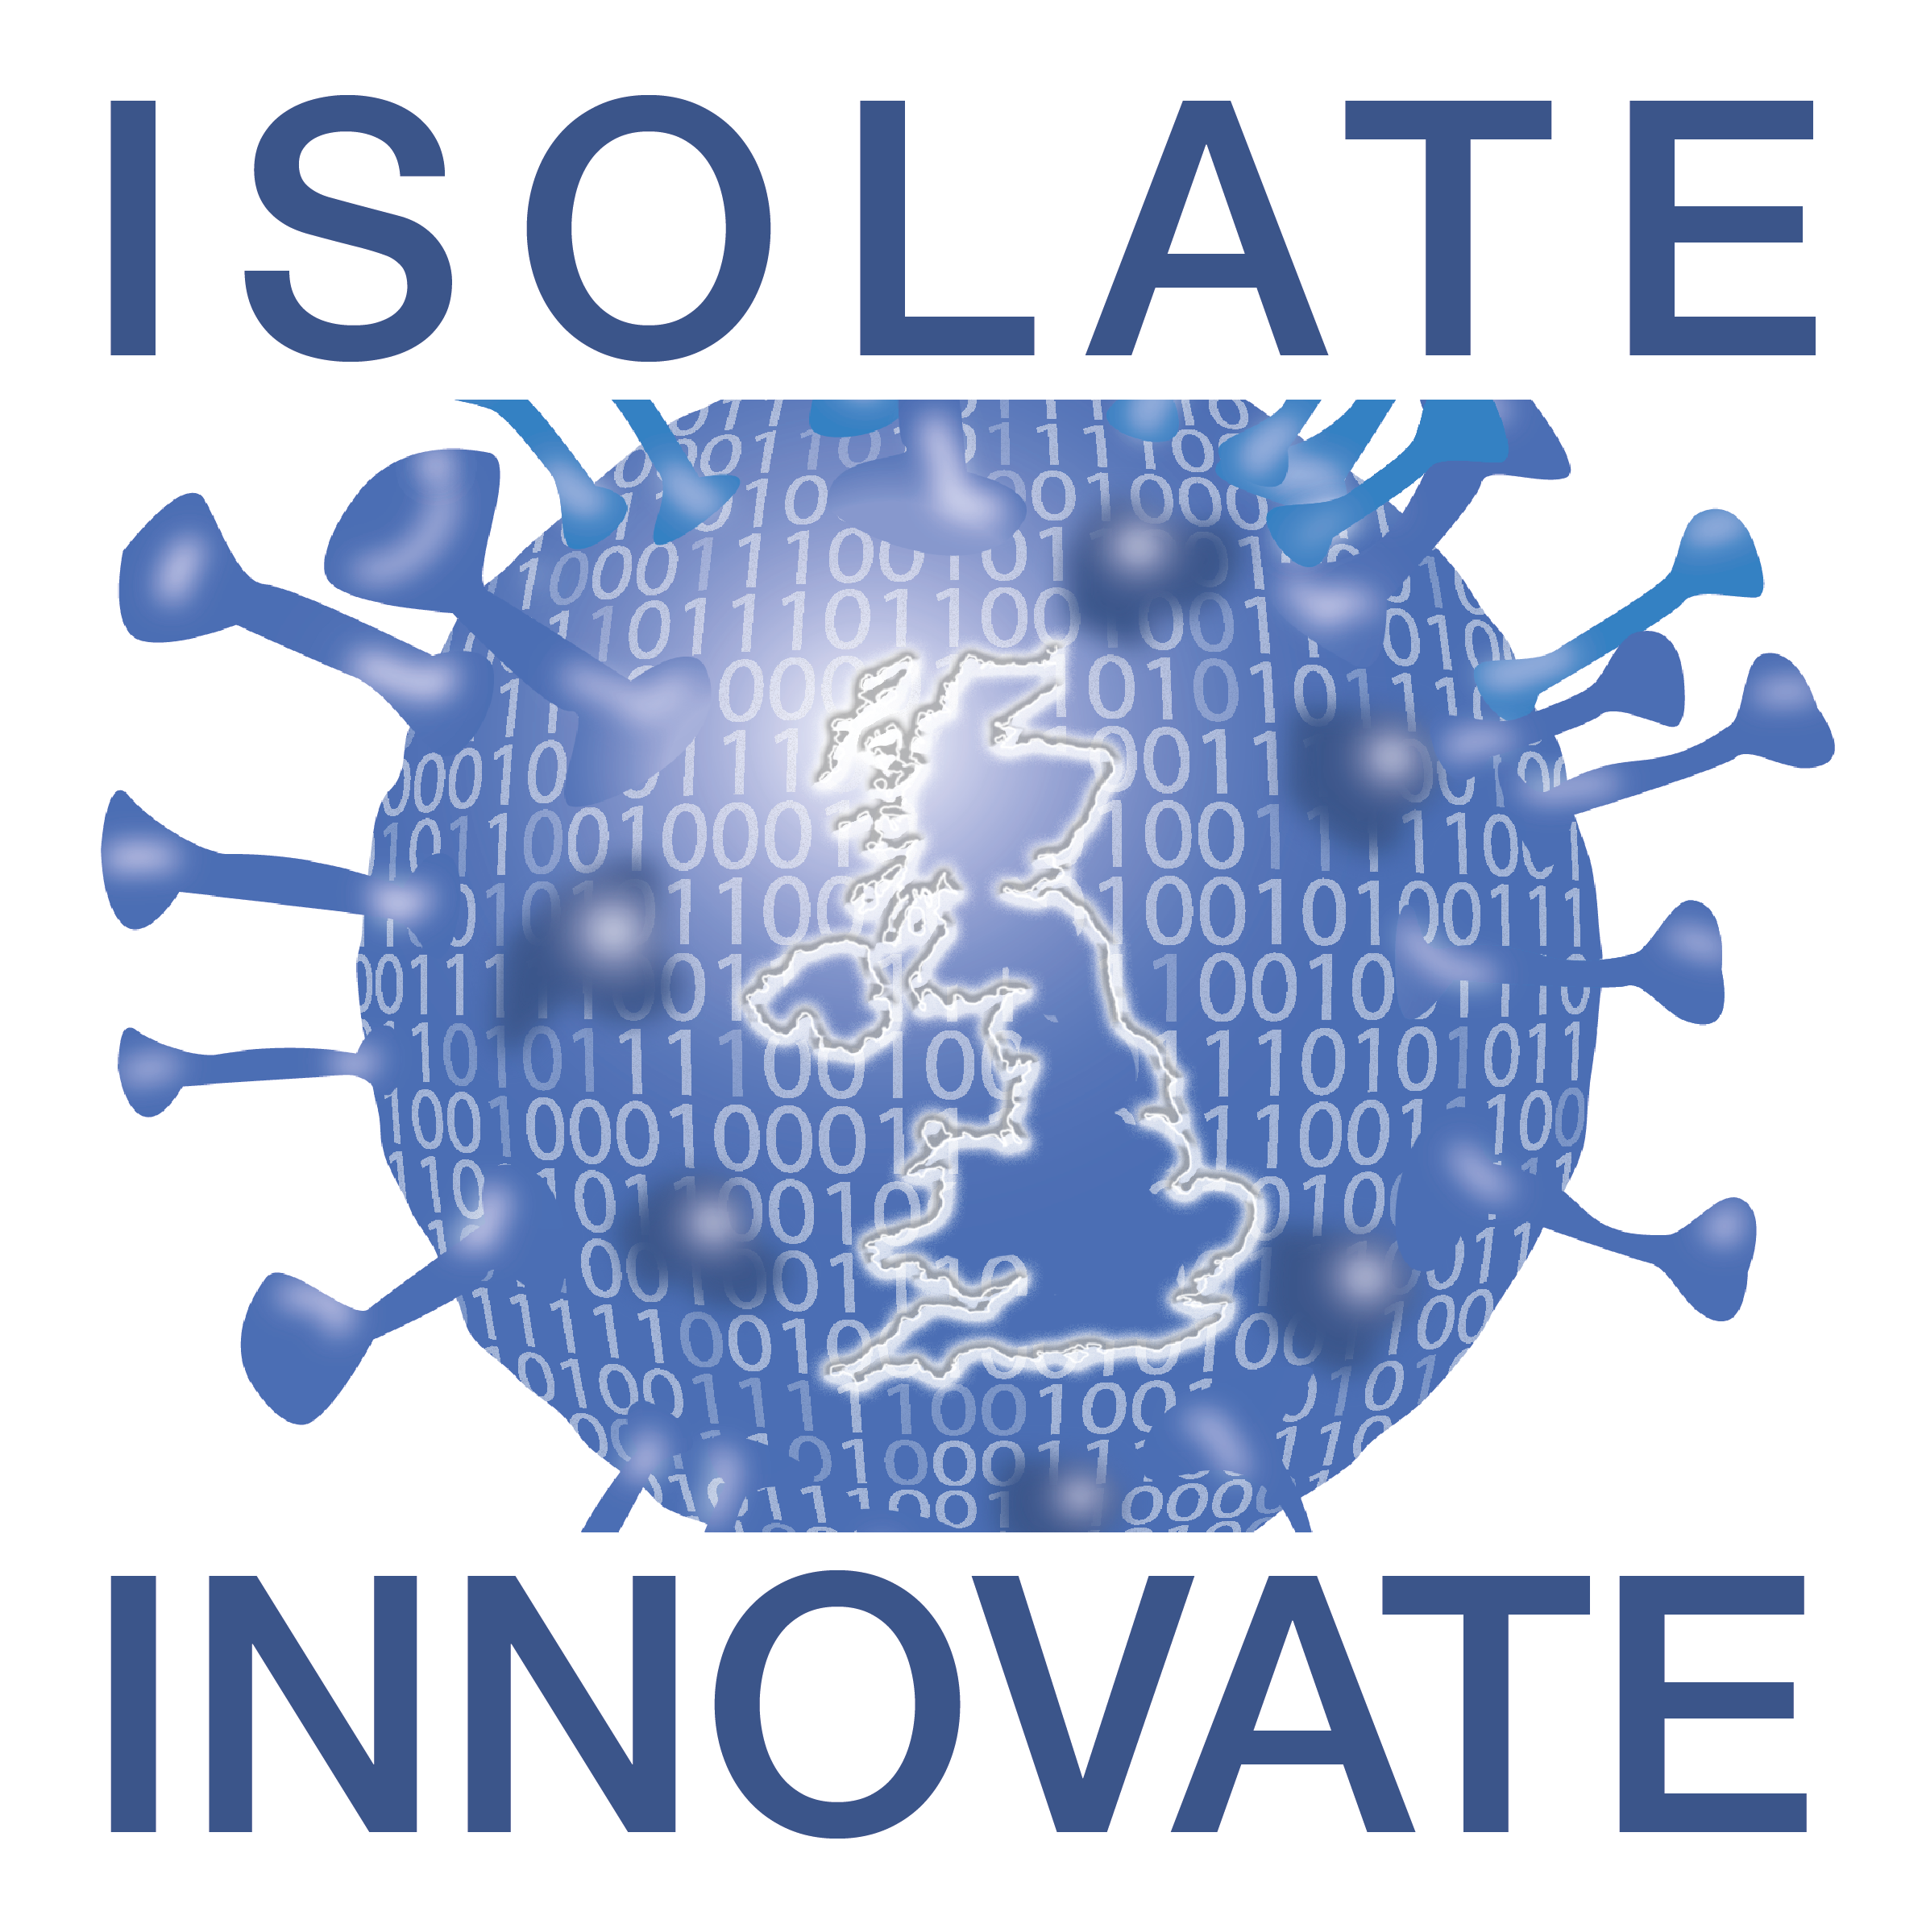 Isolate Innovate